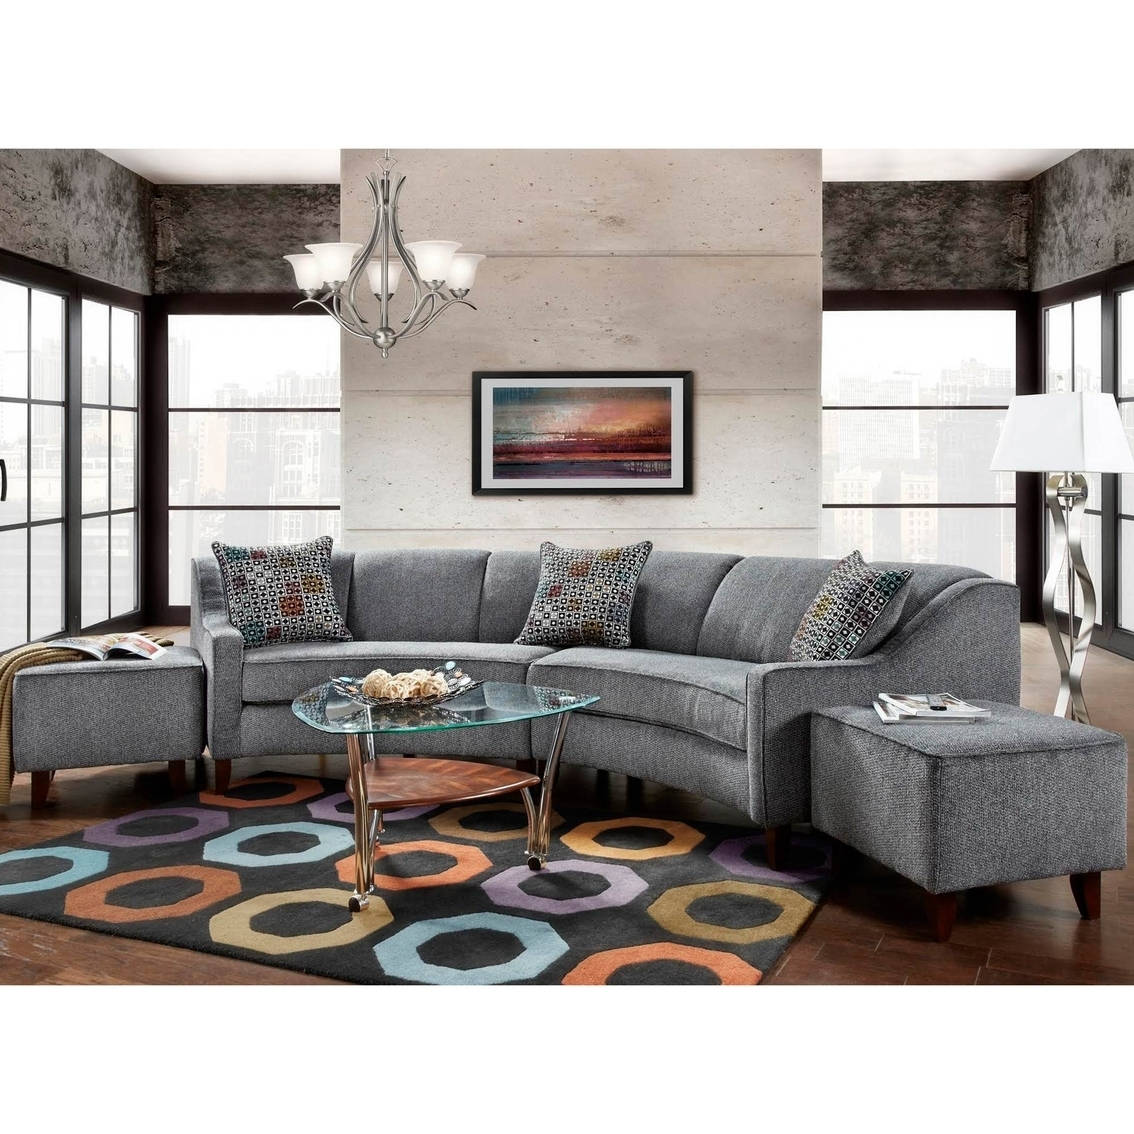 Sofas & Couches (View 13 of 20)